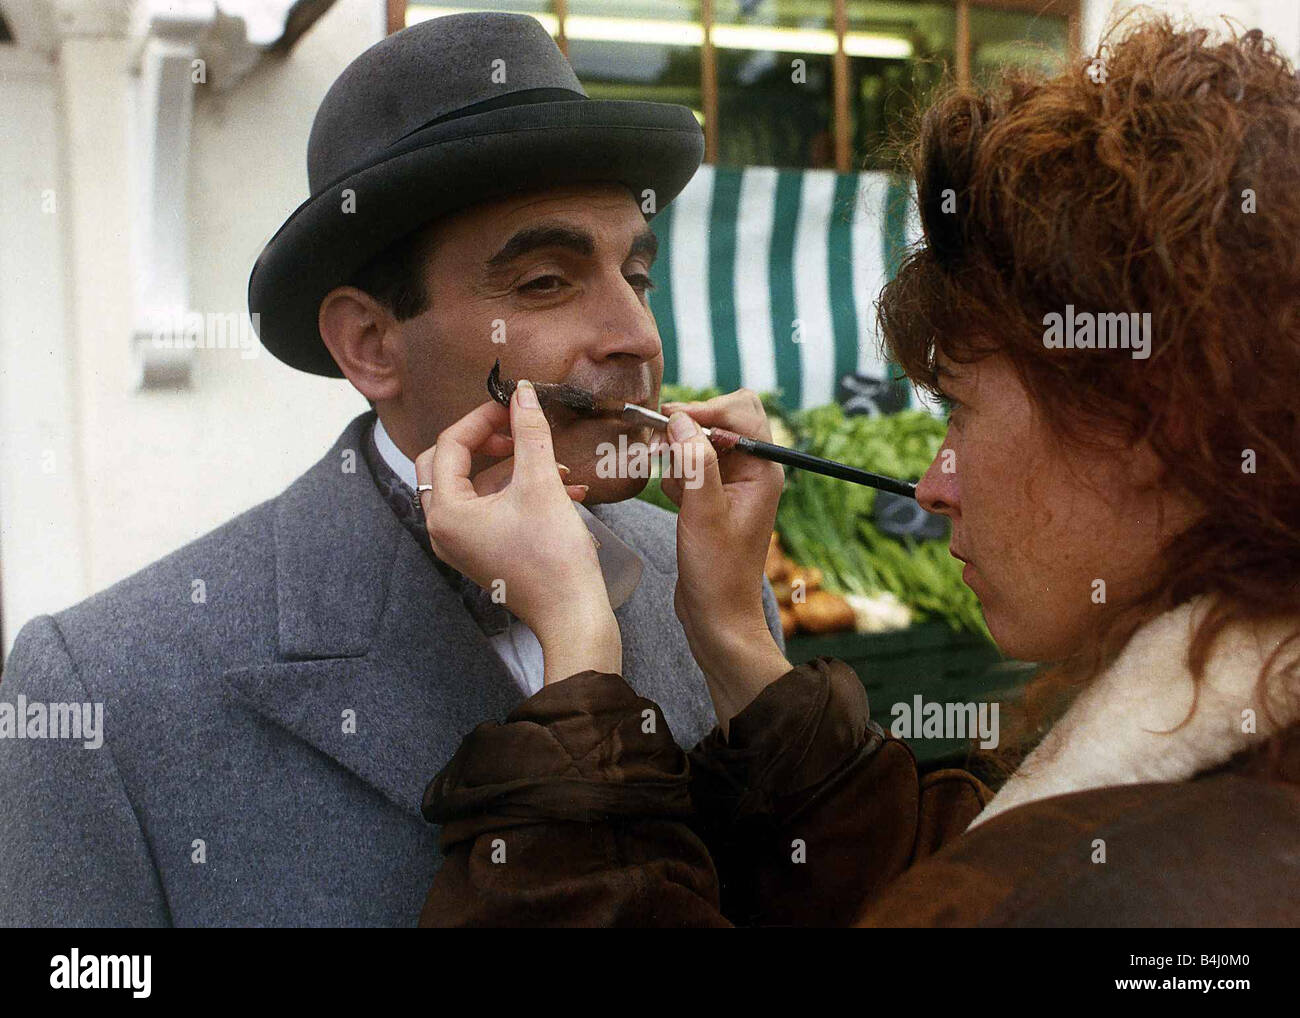 David Suchet Actor has his moustache adjusted while on the set of the TV programme Poirot November 1989 - Stock Image